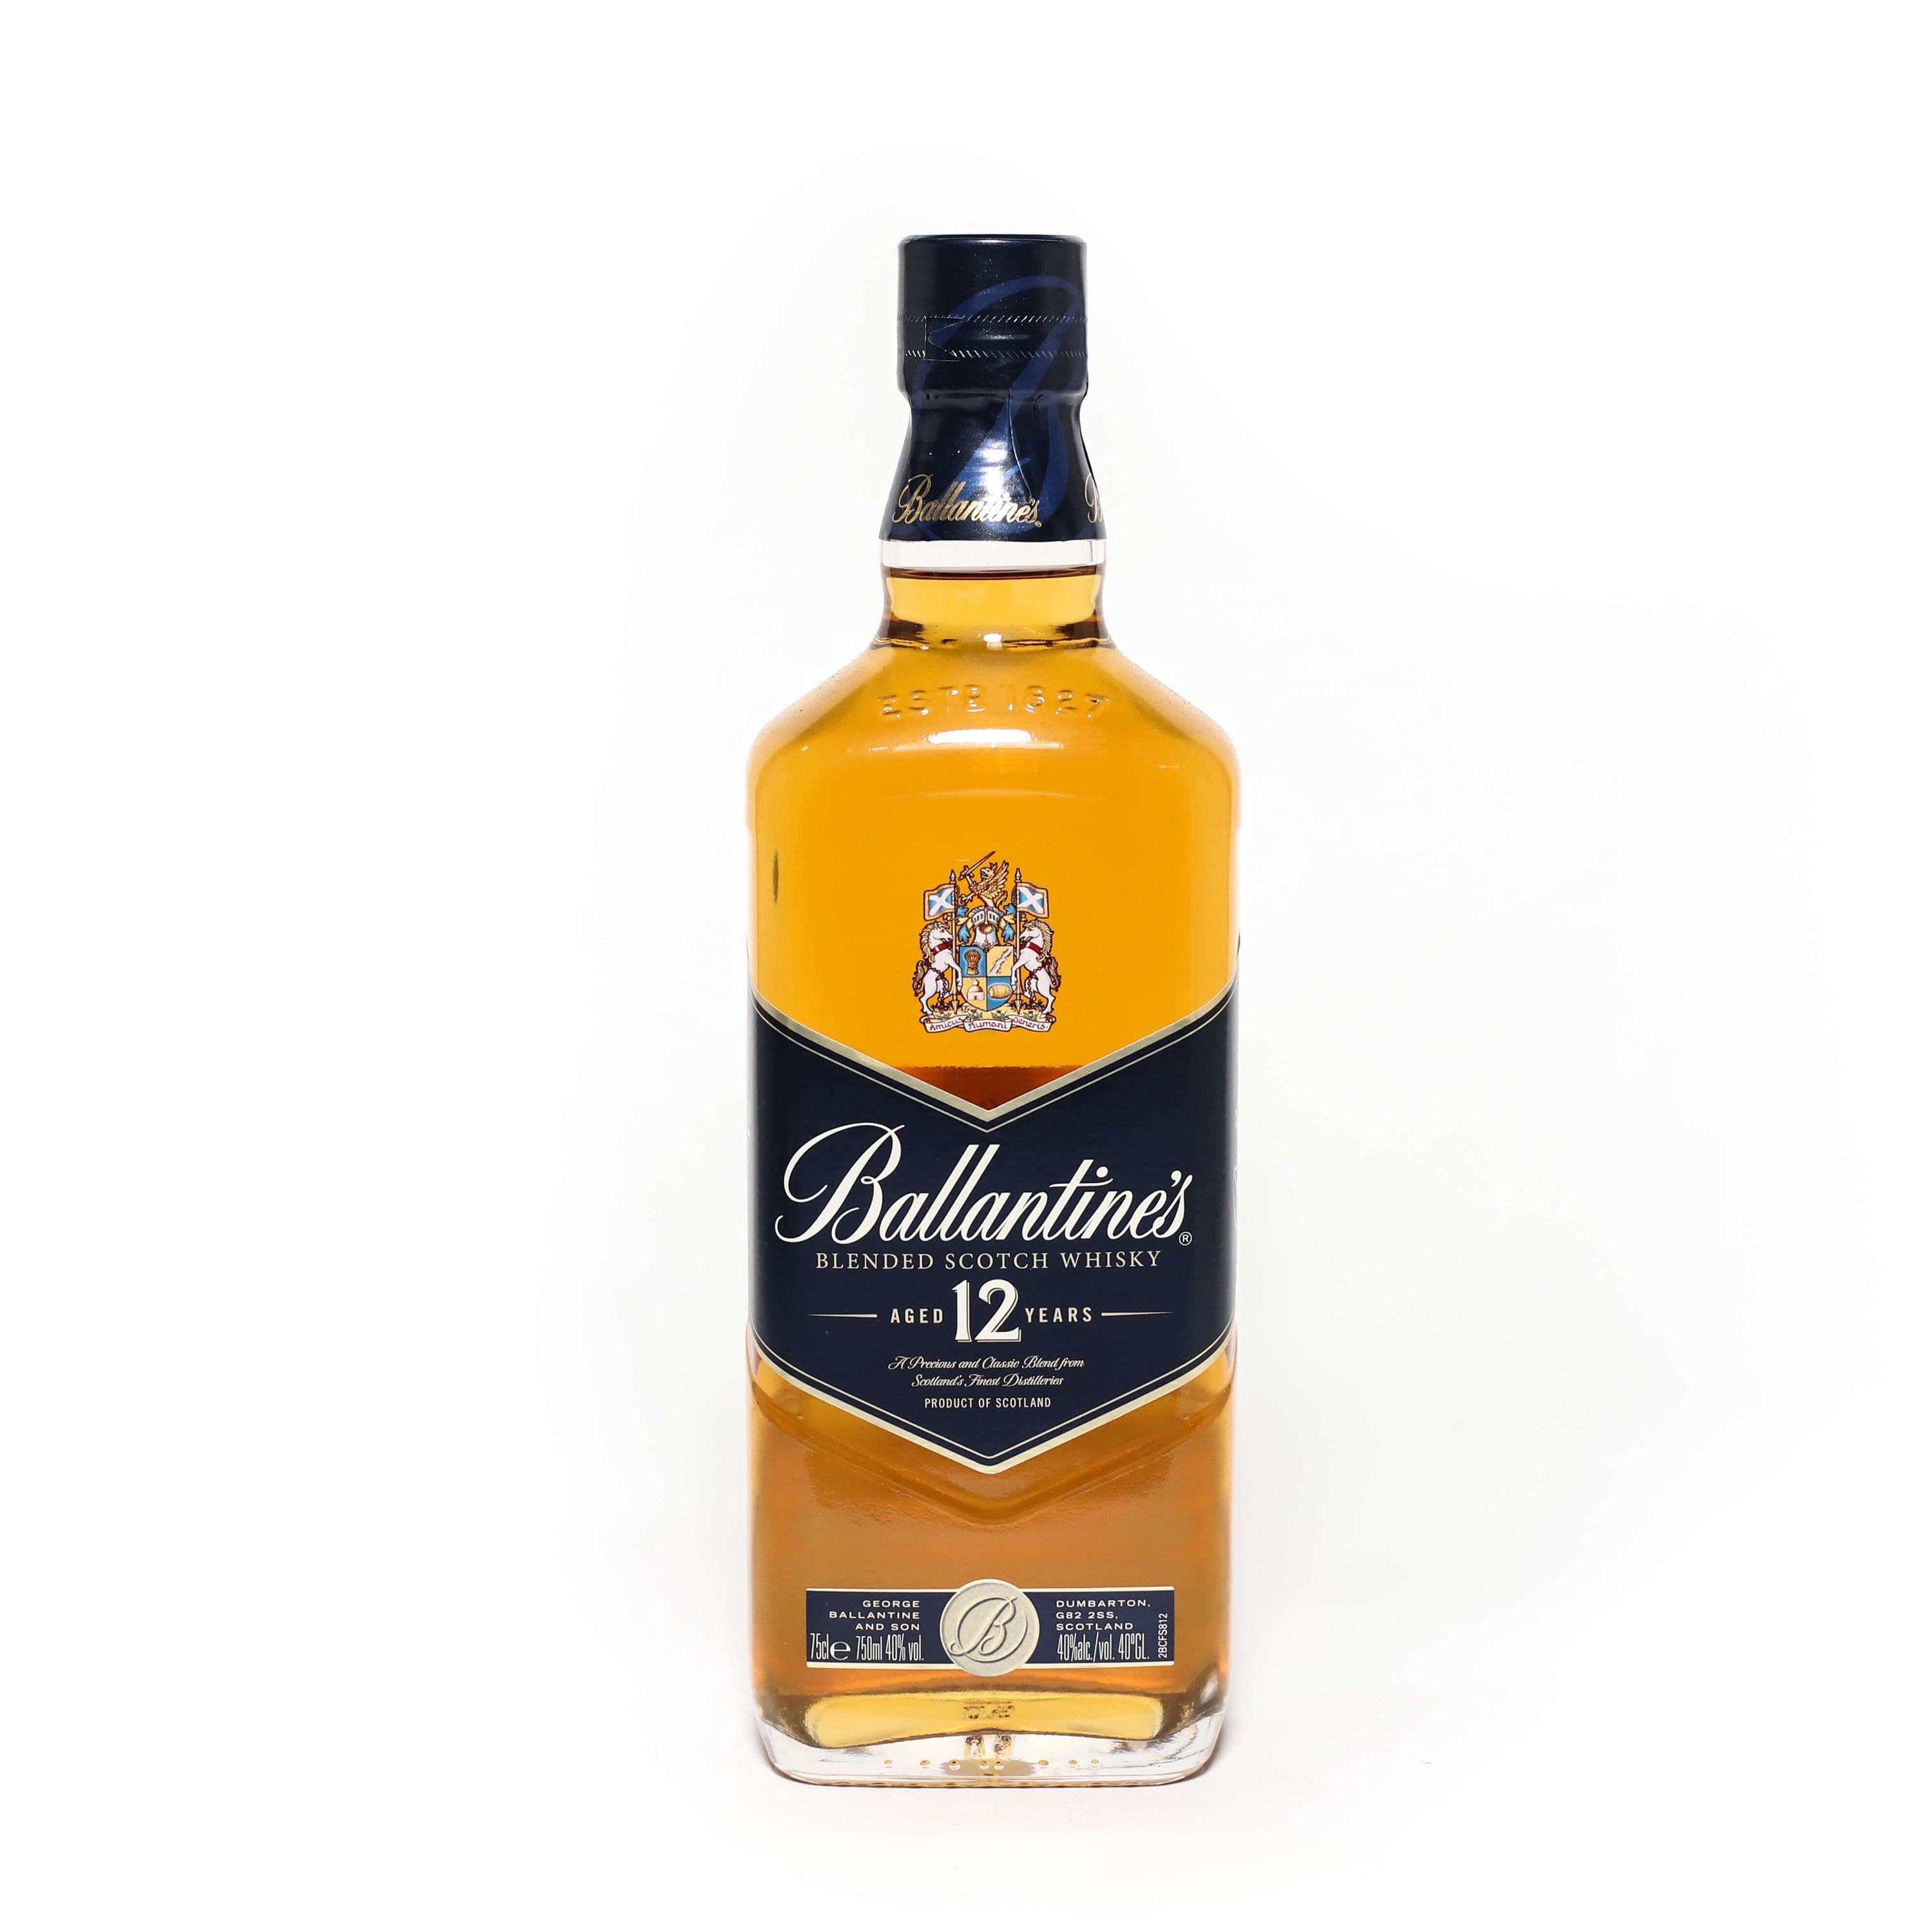 Ballantines Aged 12 Years